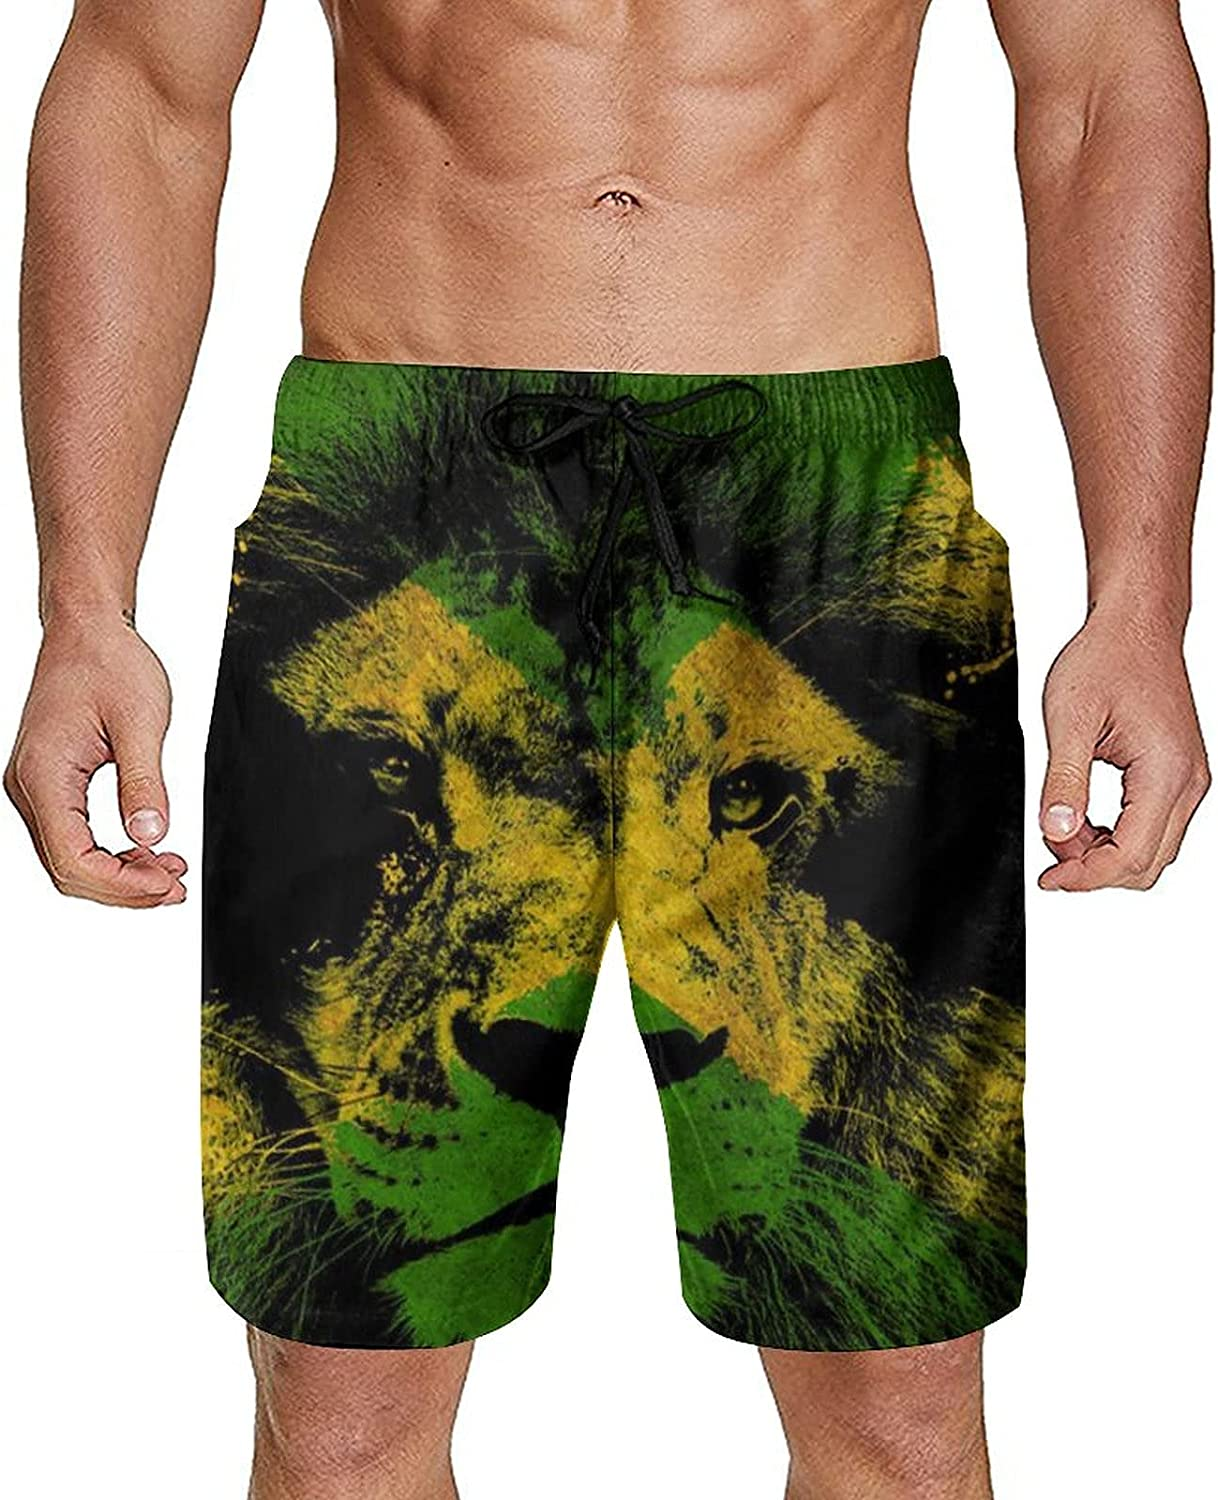 Gdewcro Jamaican Lion Flag Men's Summer Swim Trunks Quick Dry Board Shorts Beach Shorts with Mesh Lining